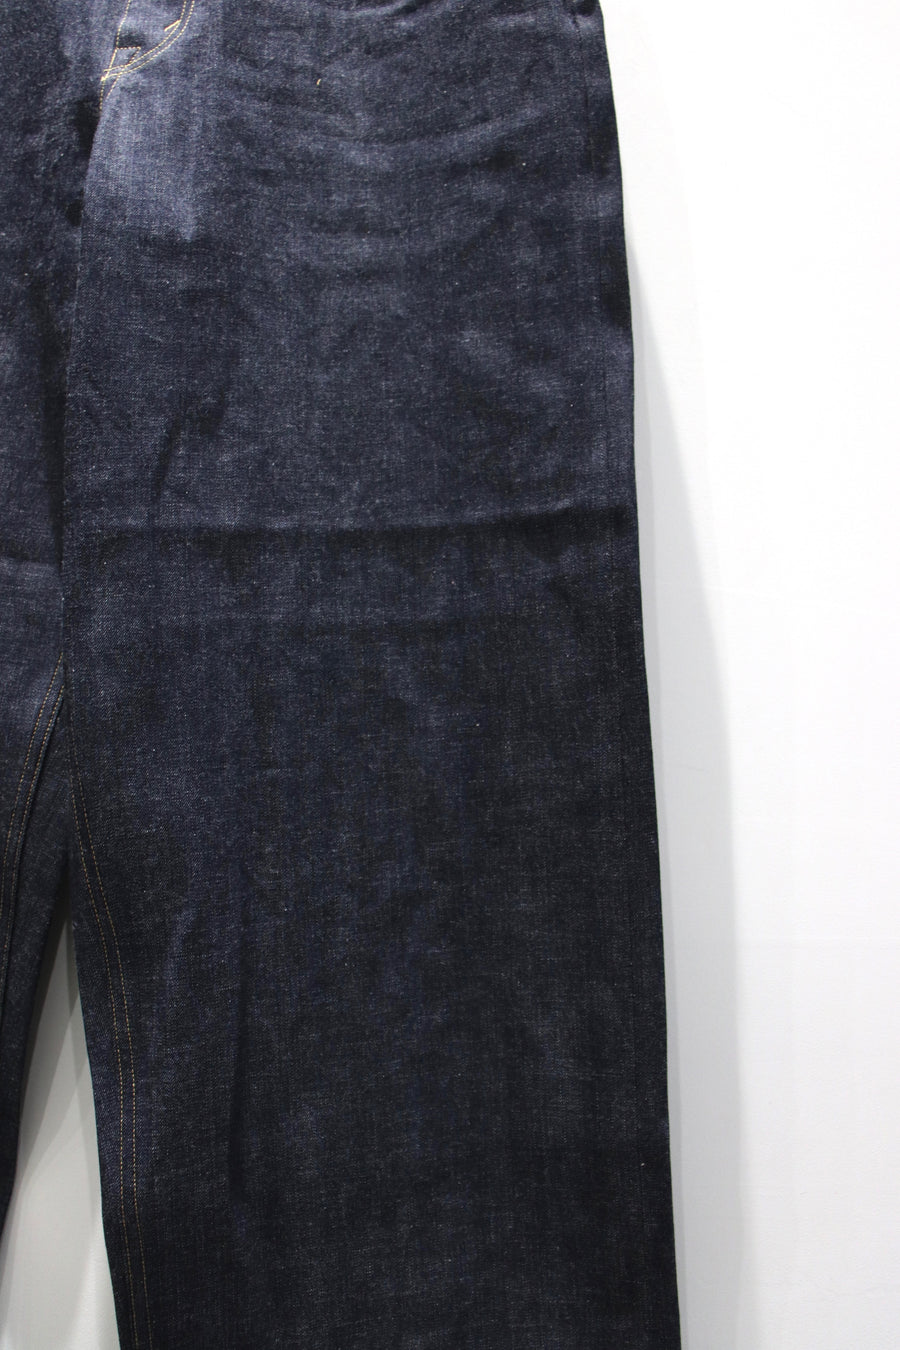 SOLARIS  10oz DENIM PANTS-7100